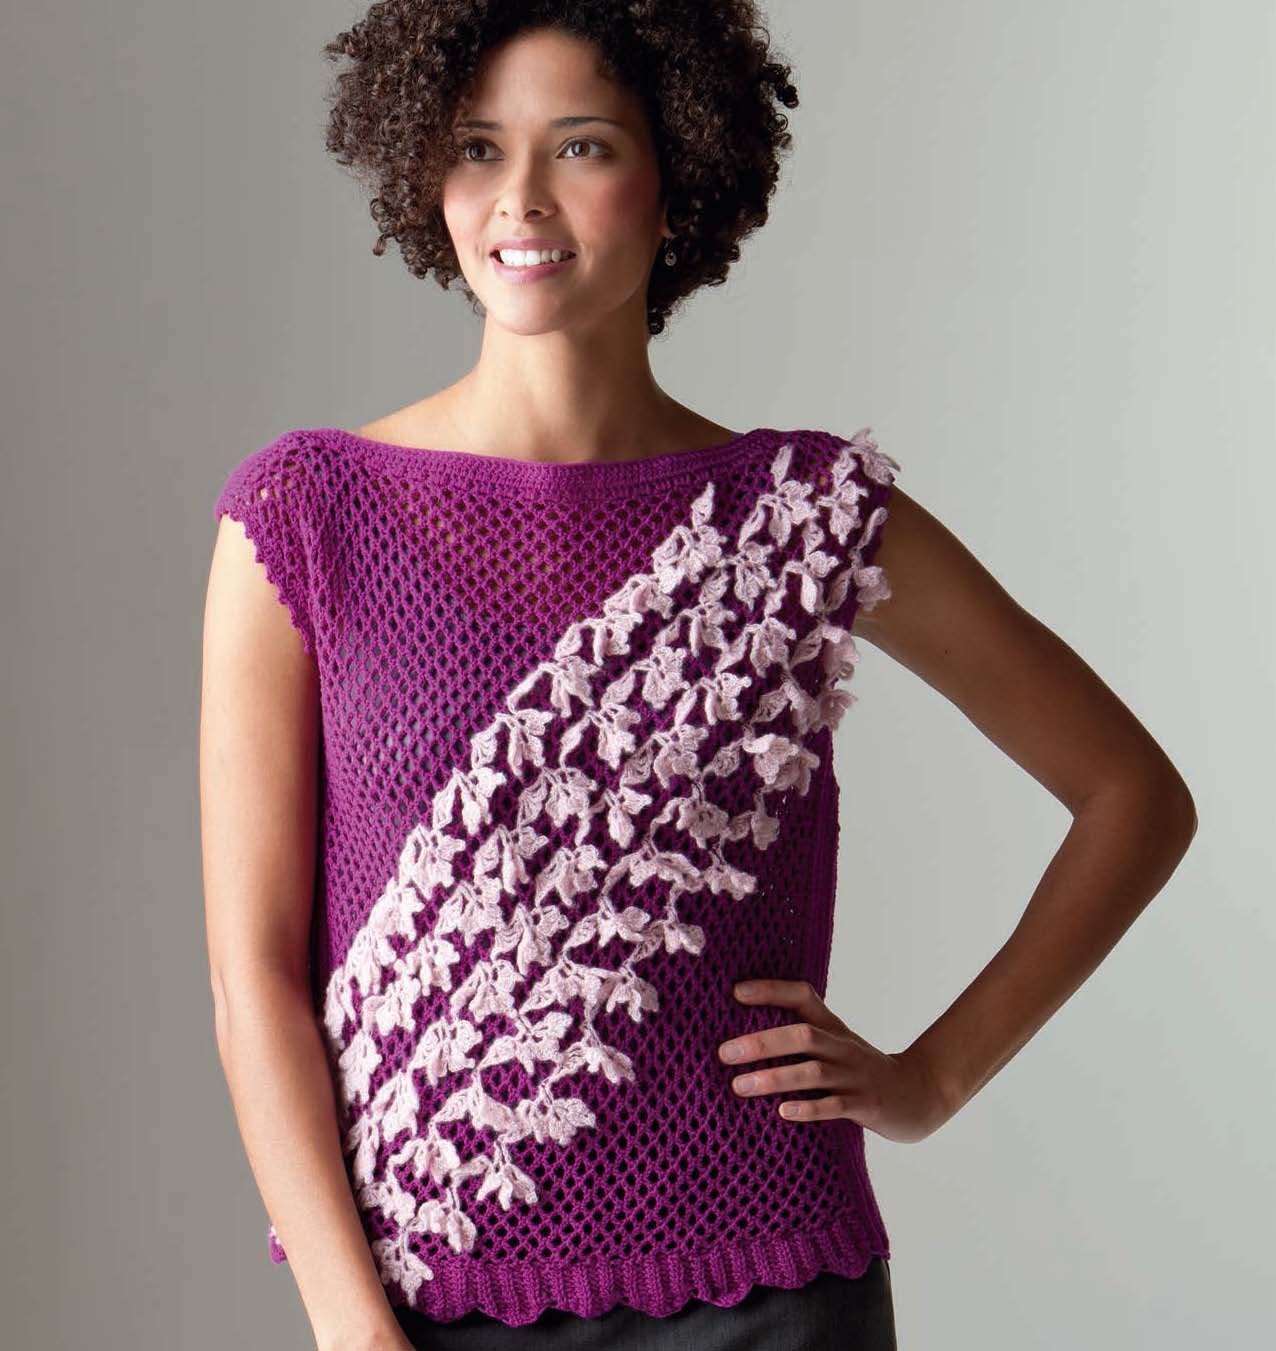 Woman wearing a fuchsia crochet top with diagonal rows of crochet lace trim across the front.